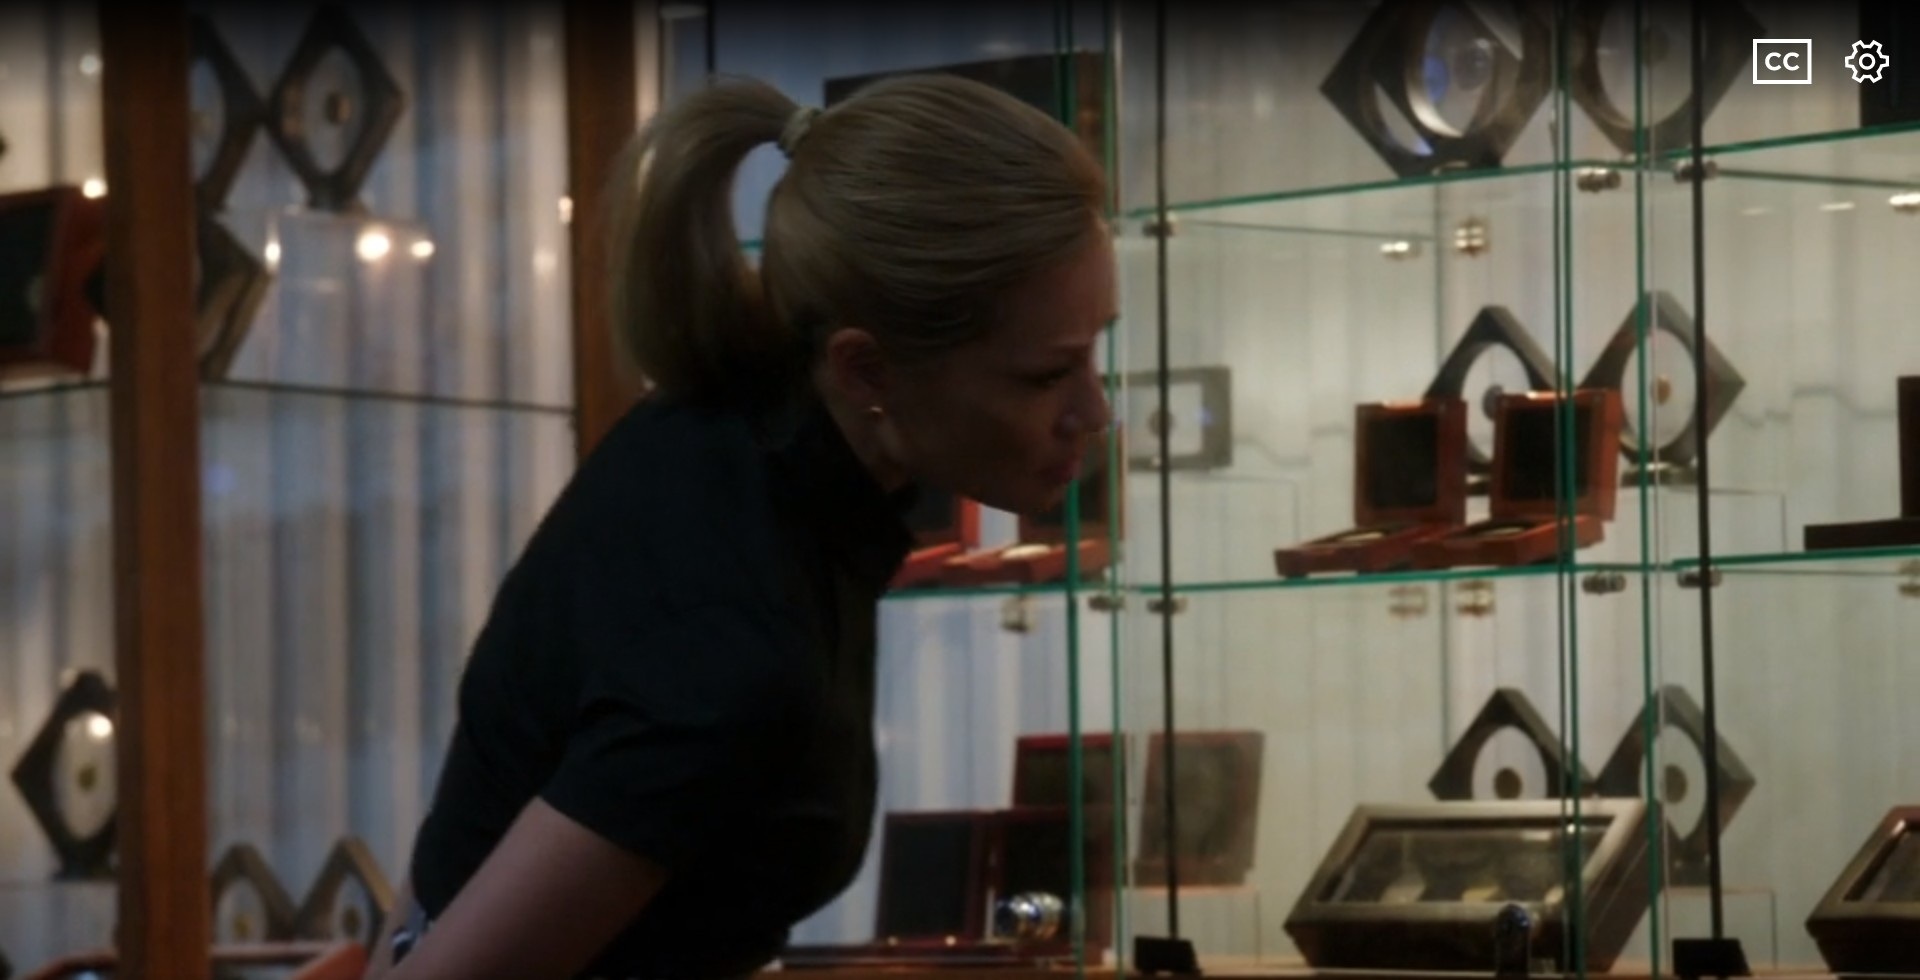 """Elementary's """"The Price of Admission"""" Episode has a Coin Collecting Scene"""